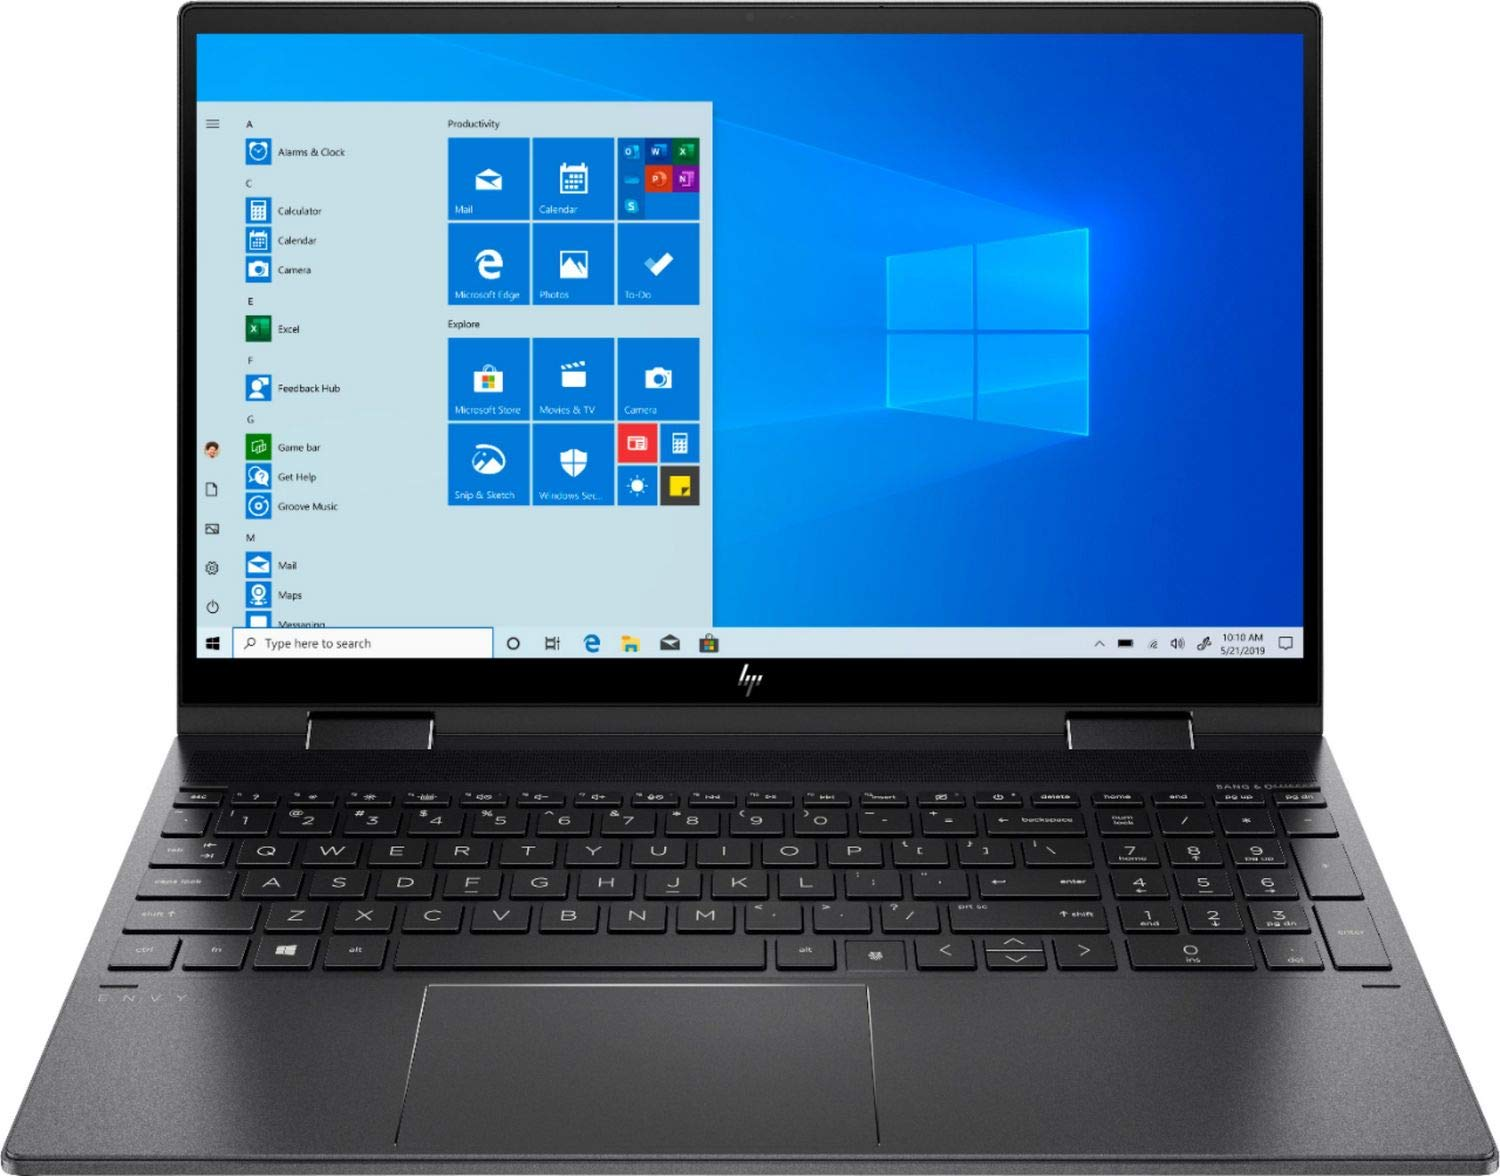 2020 Newest HP ENVY x360 2-in-1 Laptop, 15.6